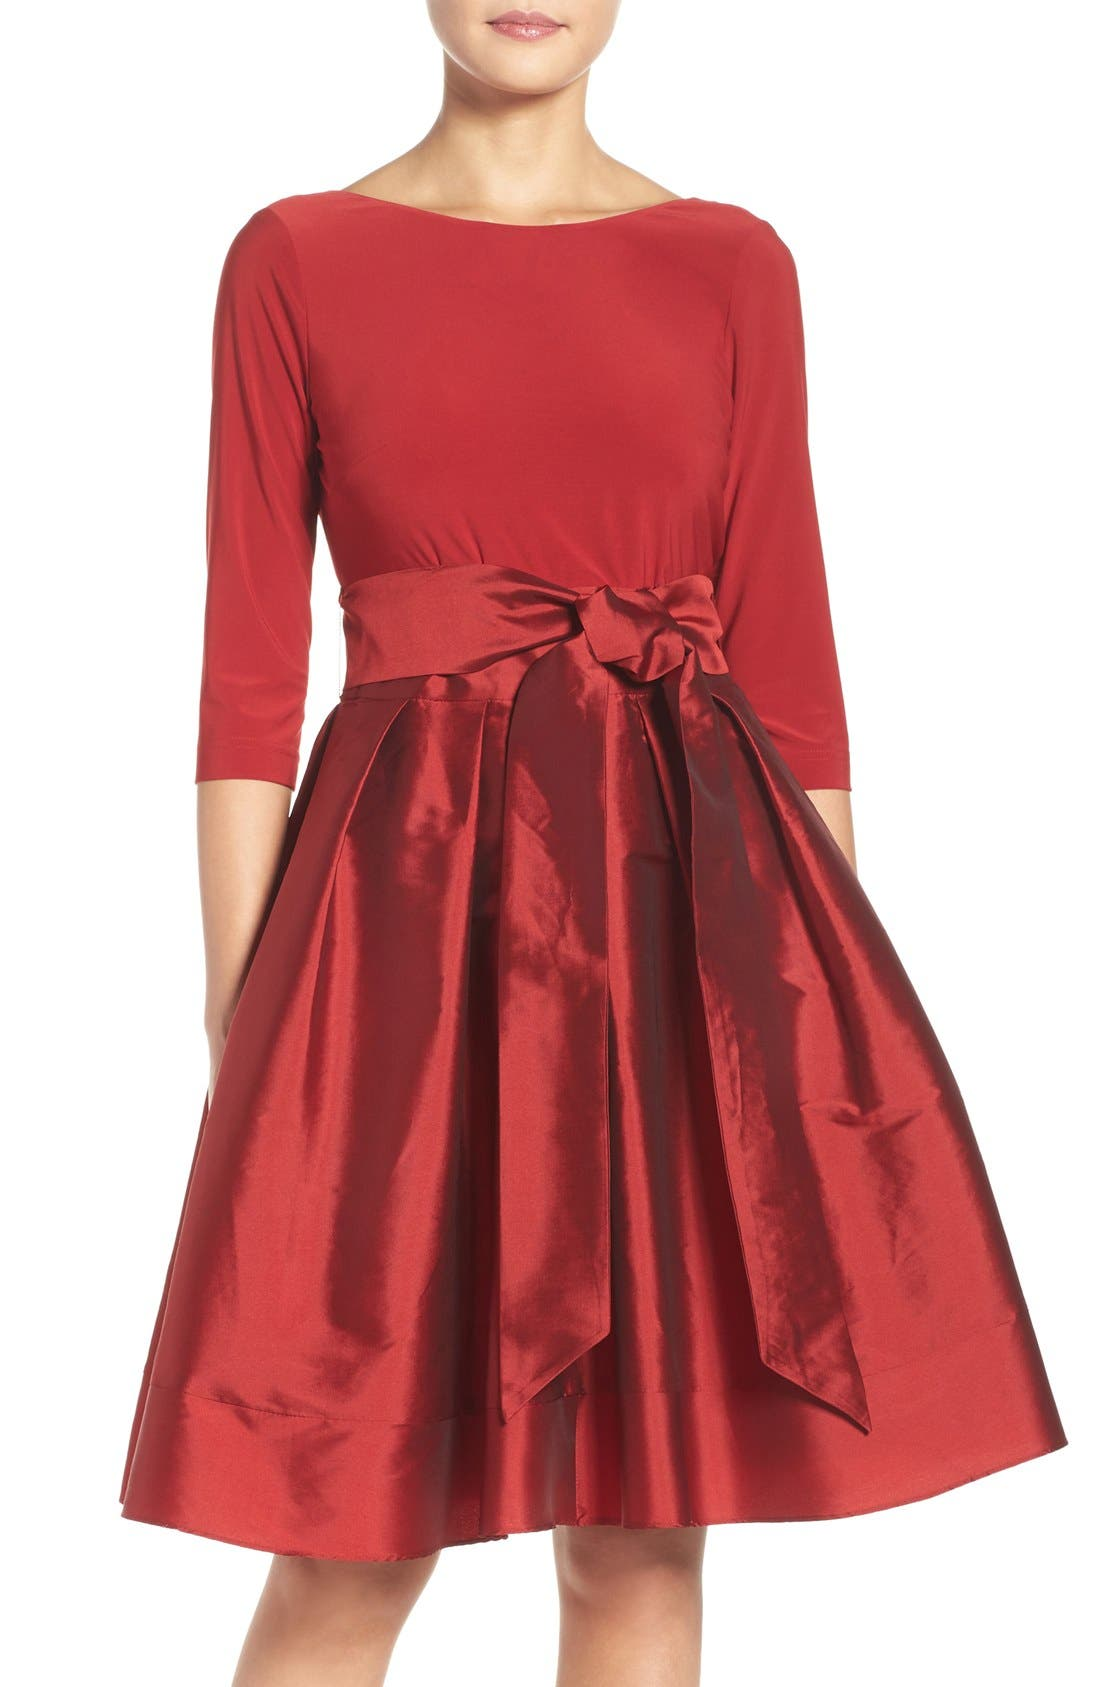 Alternate Image 1 Selected - Adrianna Papell Taffeta Fit & Flare Dress